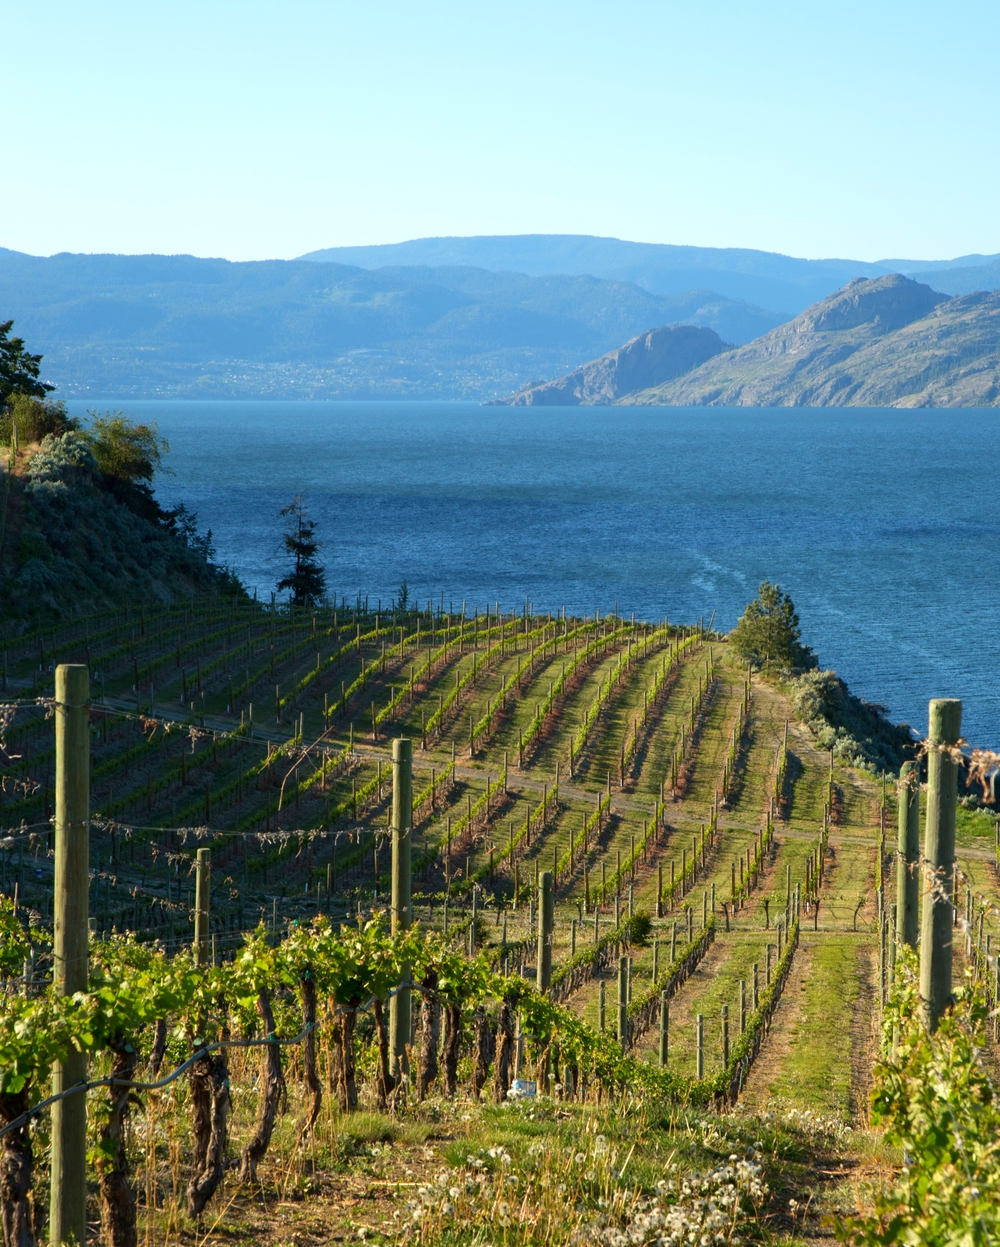 Gorgeous views: Evolve's Summerland vineyard swoops down towards Okanagan Lake (photo courtesy Evolve Cellars)